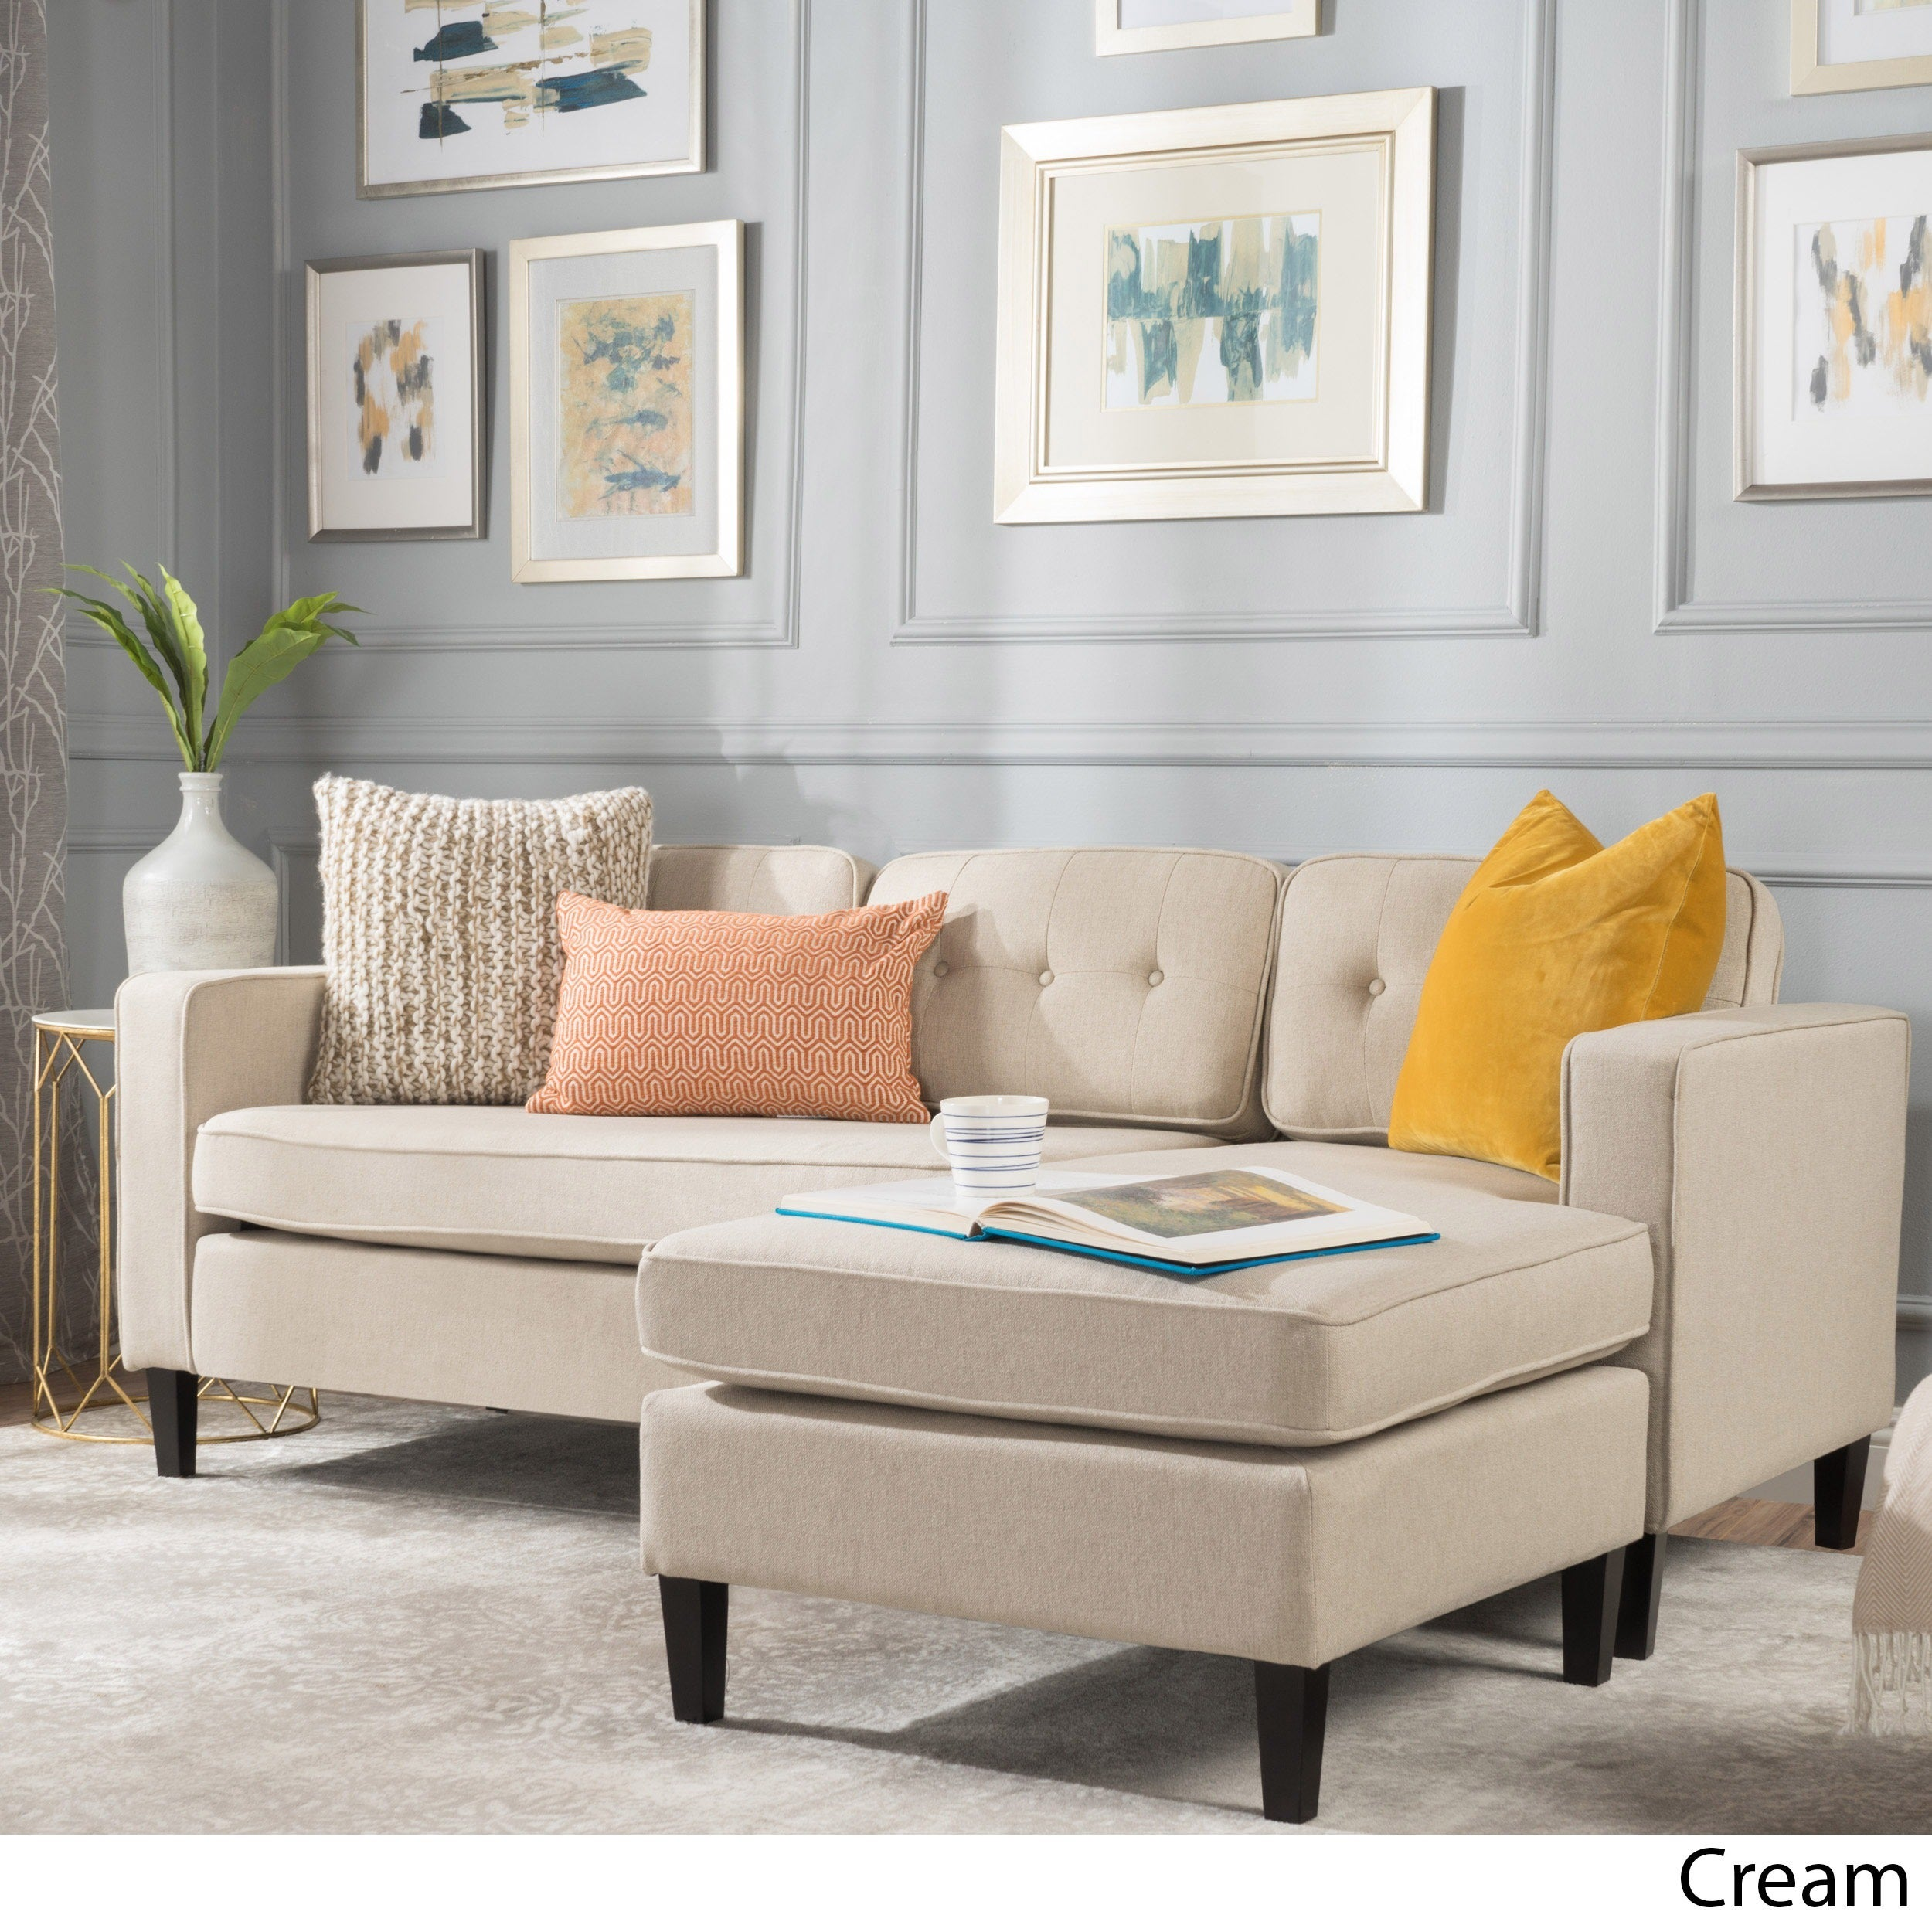 Cream Sofas & Couches For Less | Overstock